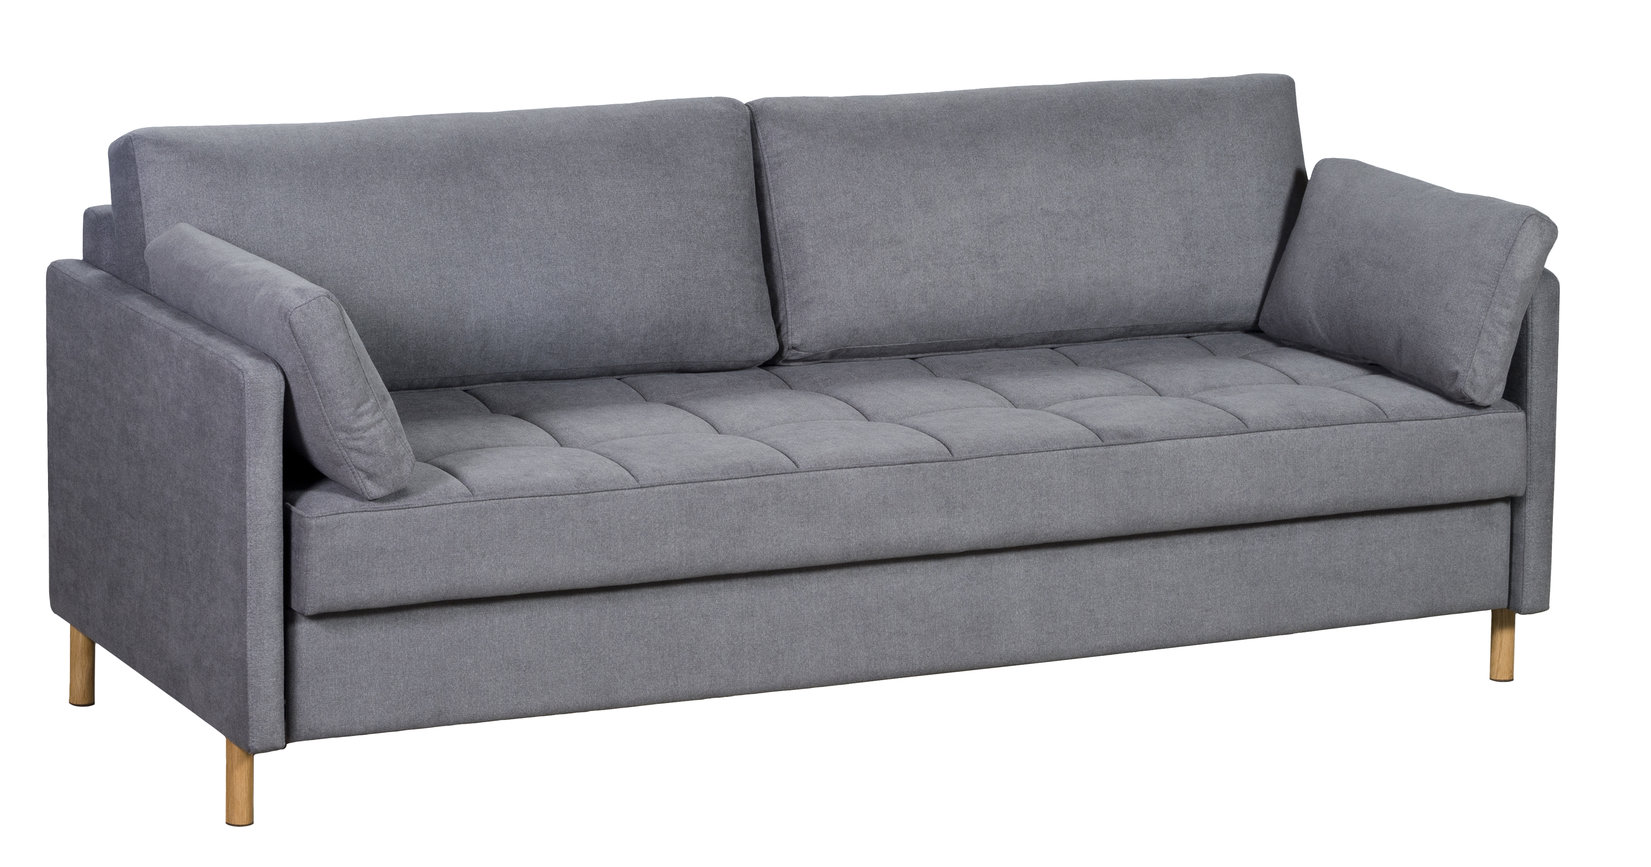 Bed sofas 3-seater